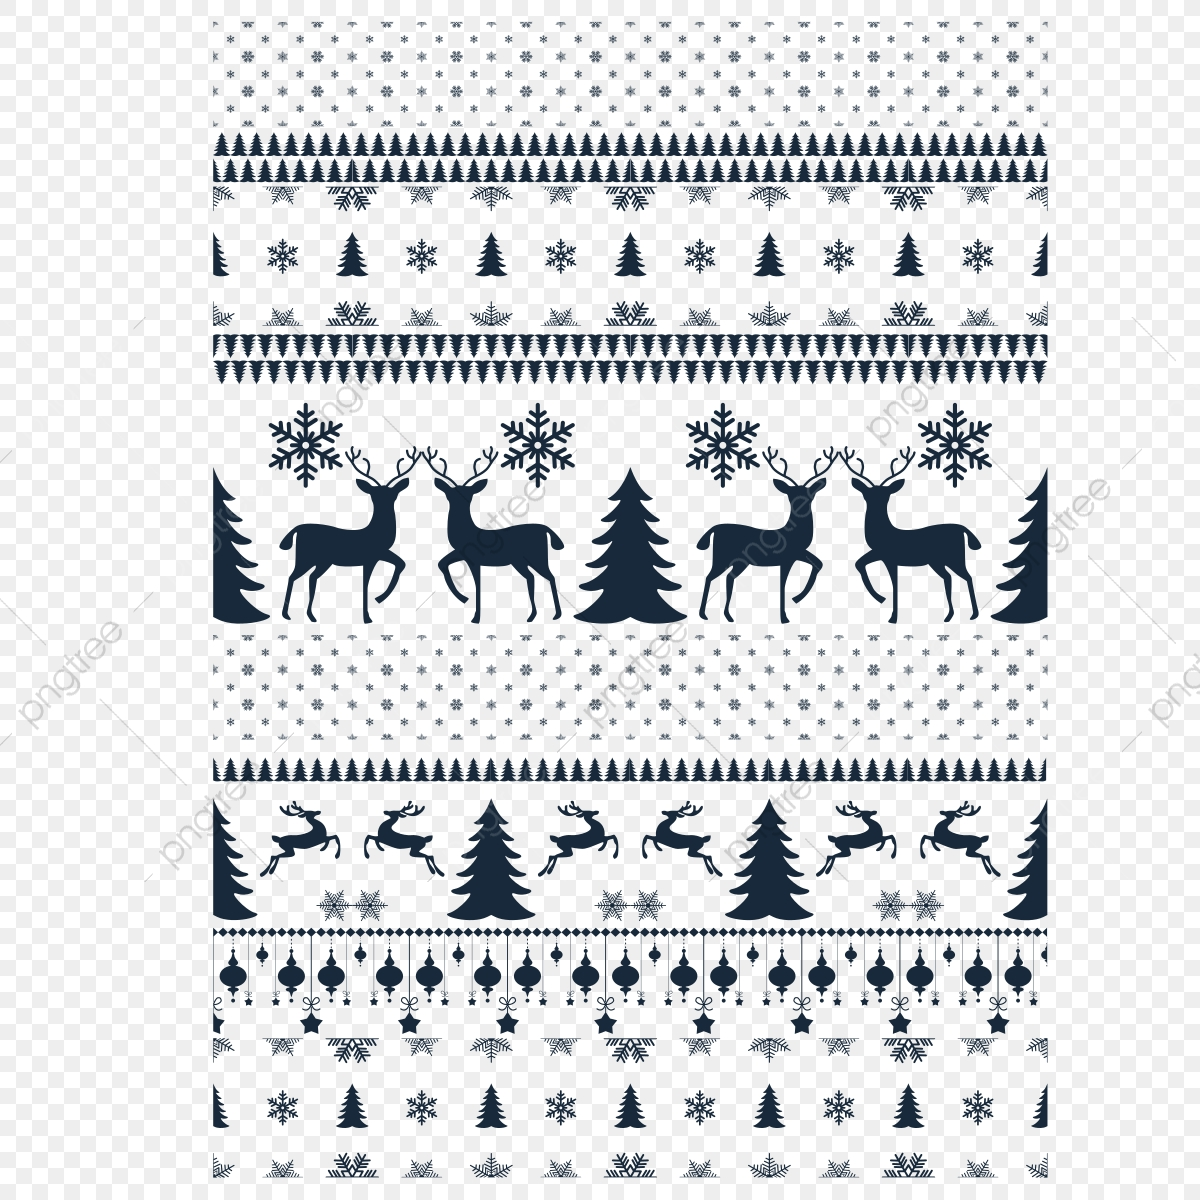 Knitted Elements And Borders For Or Design Sweater Ornaments For Scandinavian Pattern Vector Illustration Sweater Pattern Ugly Png And Vector With Transparent Background For Free Download